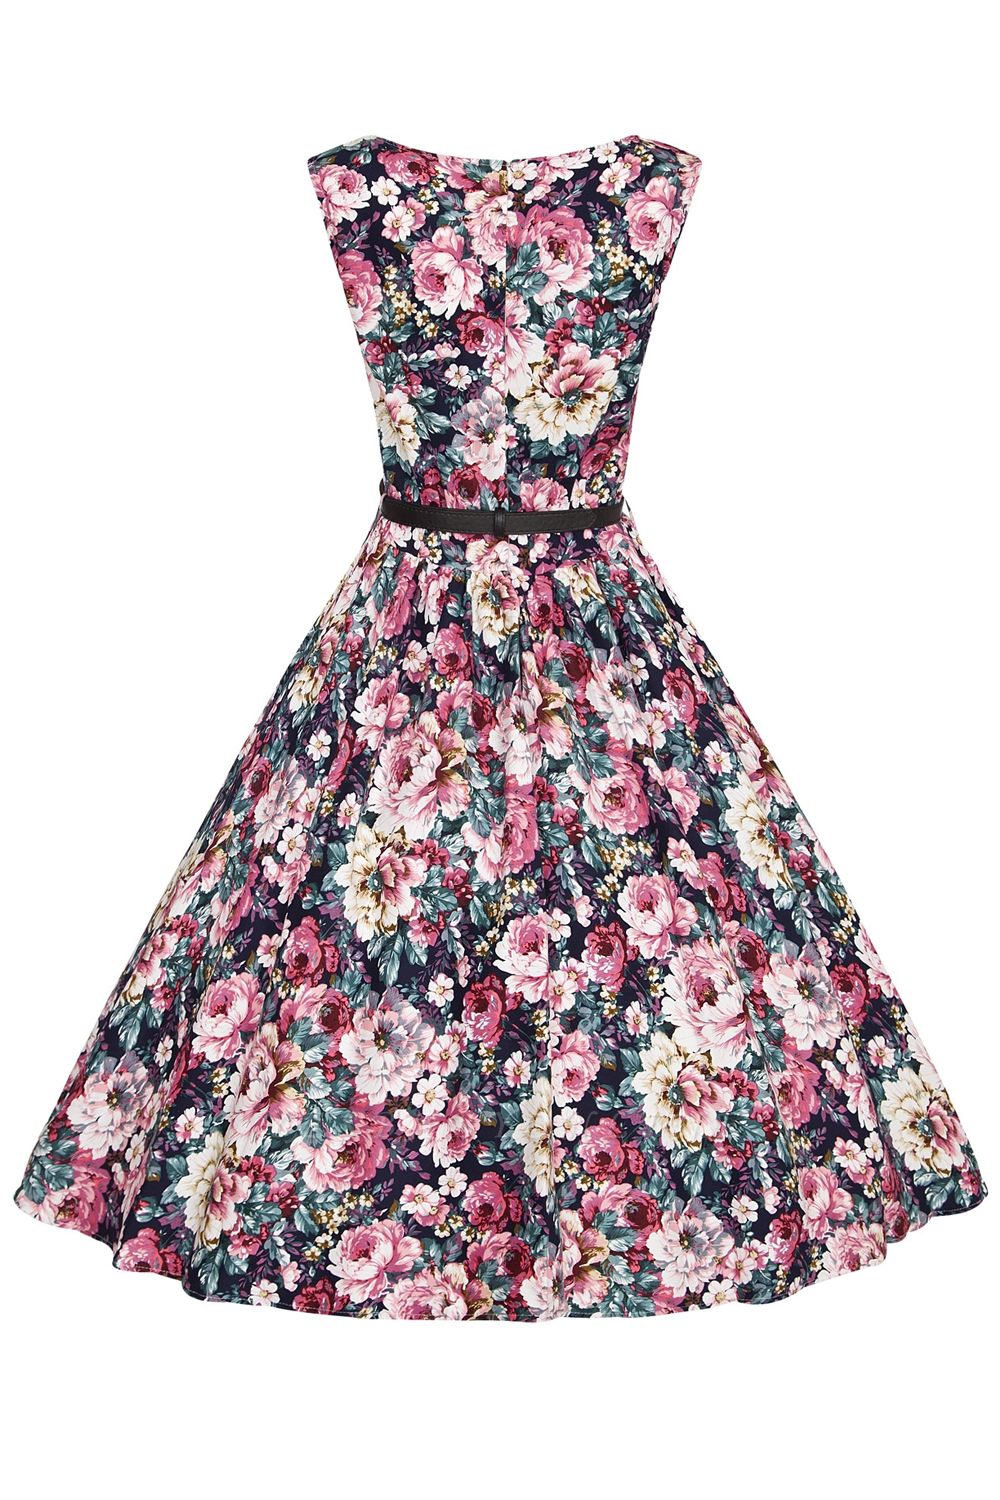 1950S Belted Floral Printed Retro Dress